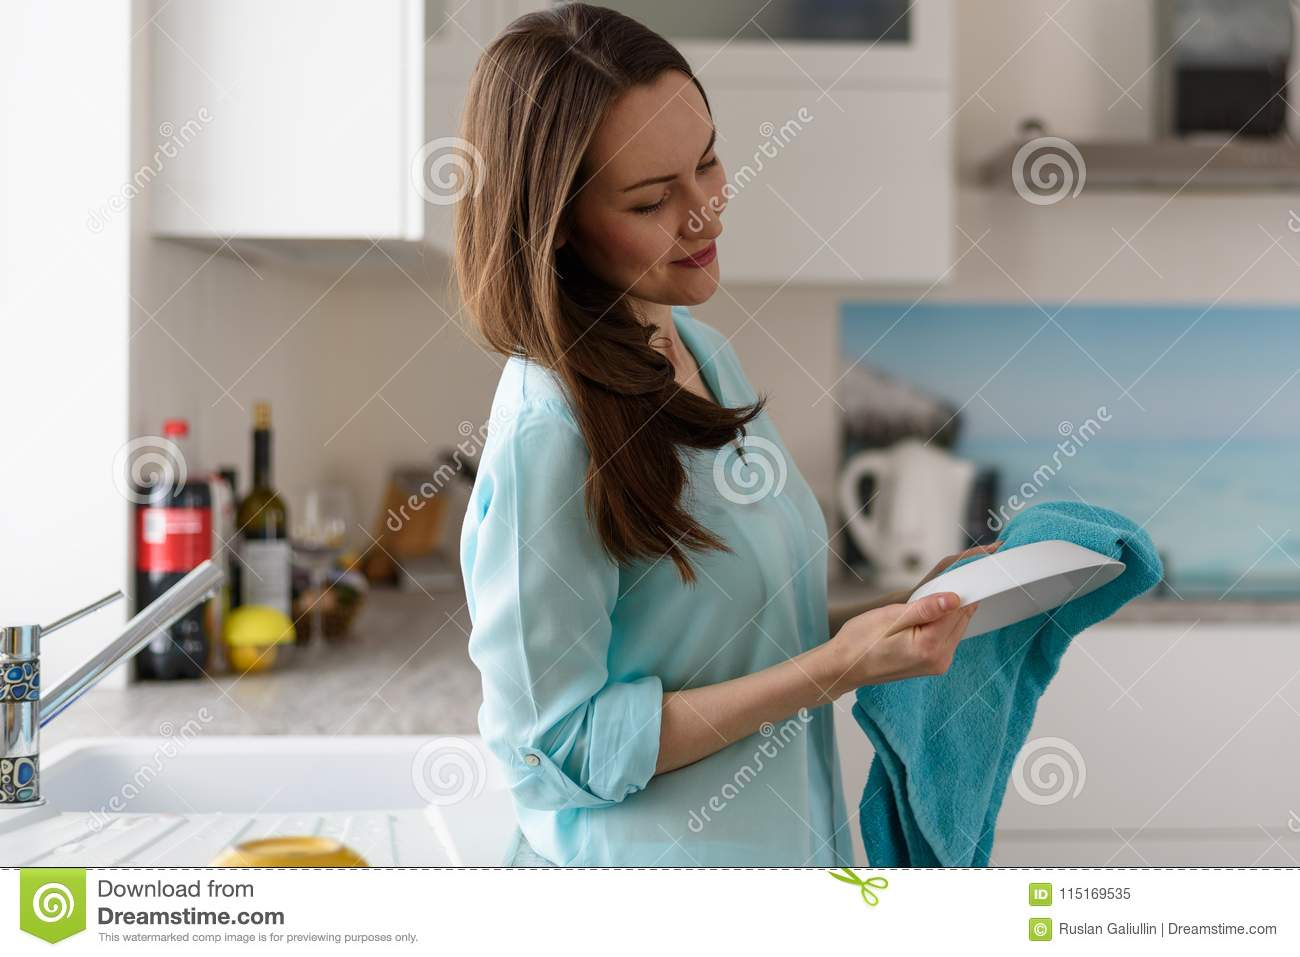 Portrait of a young woman in the kitchen interior wipe with a dry towel clean dishes, cleaning the house